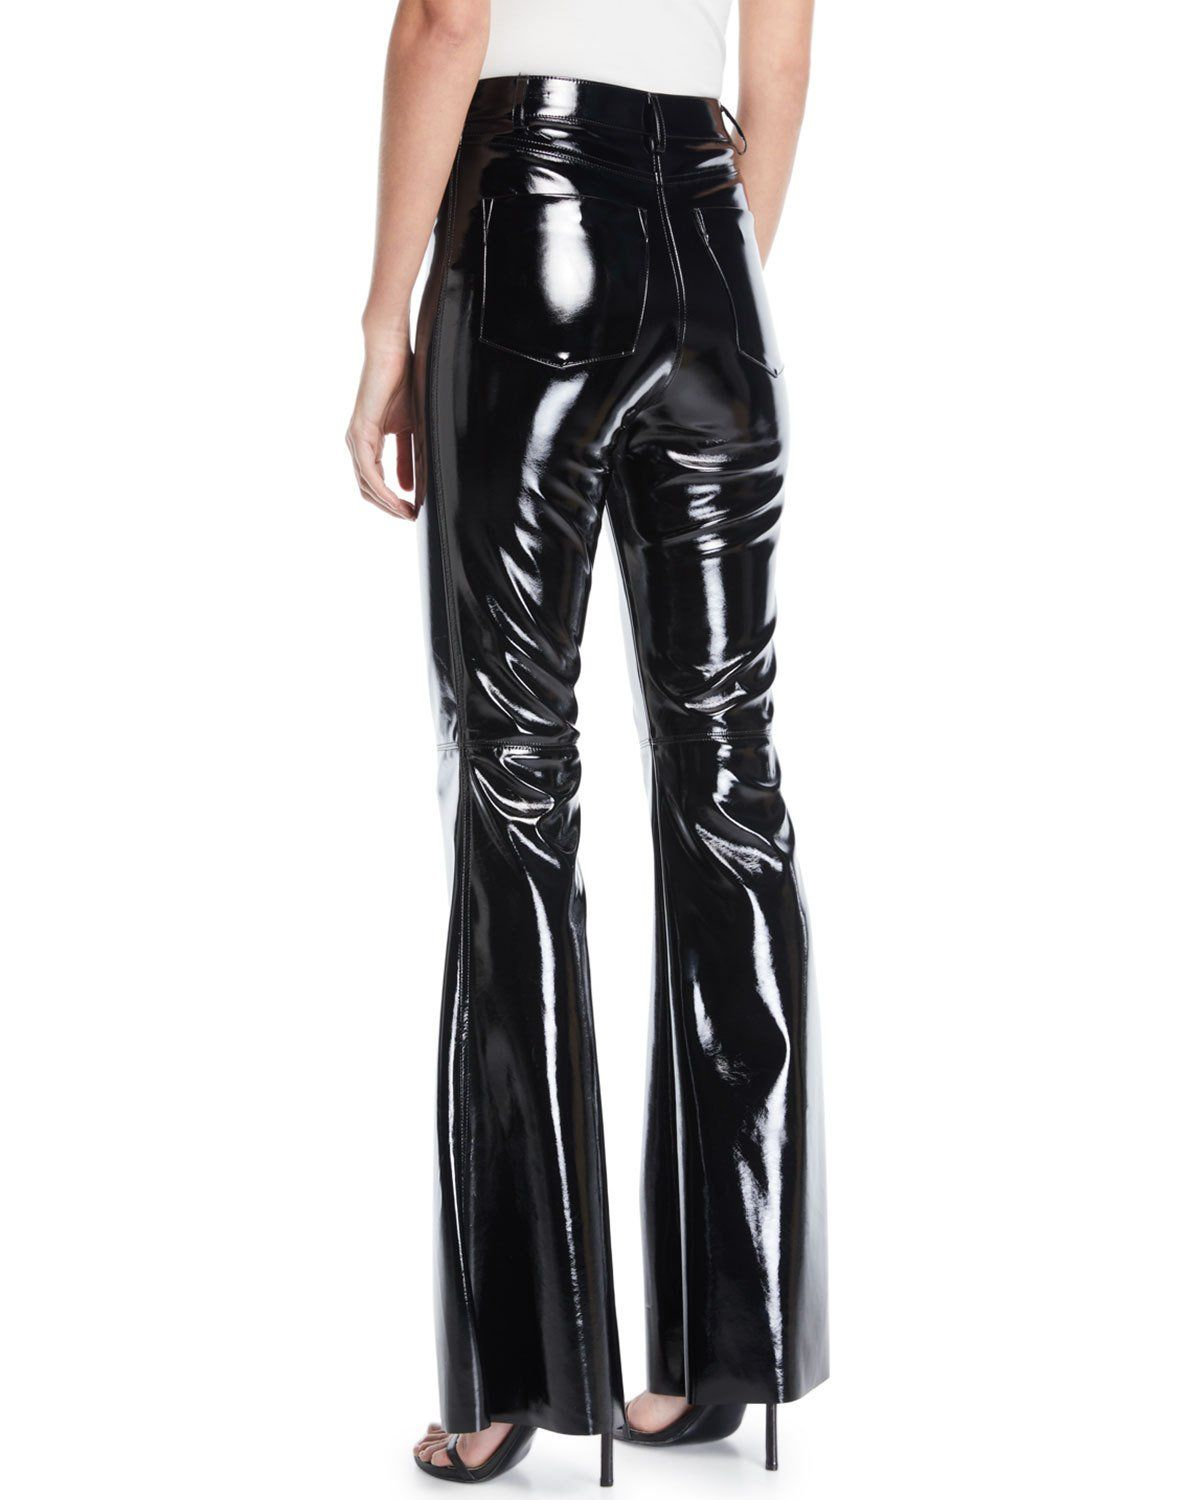 97546224afce8 Alice + Olivia Brent High-Waist Bell Pants | Products | Pants, Pvc ...